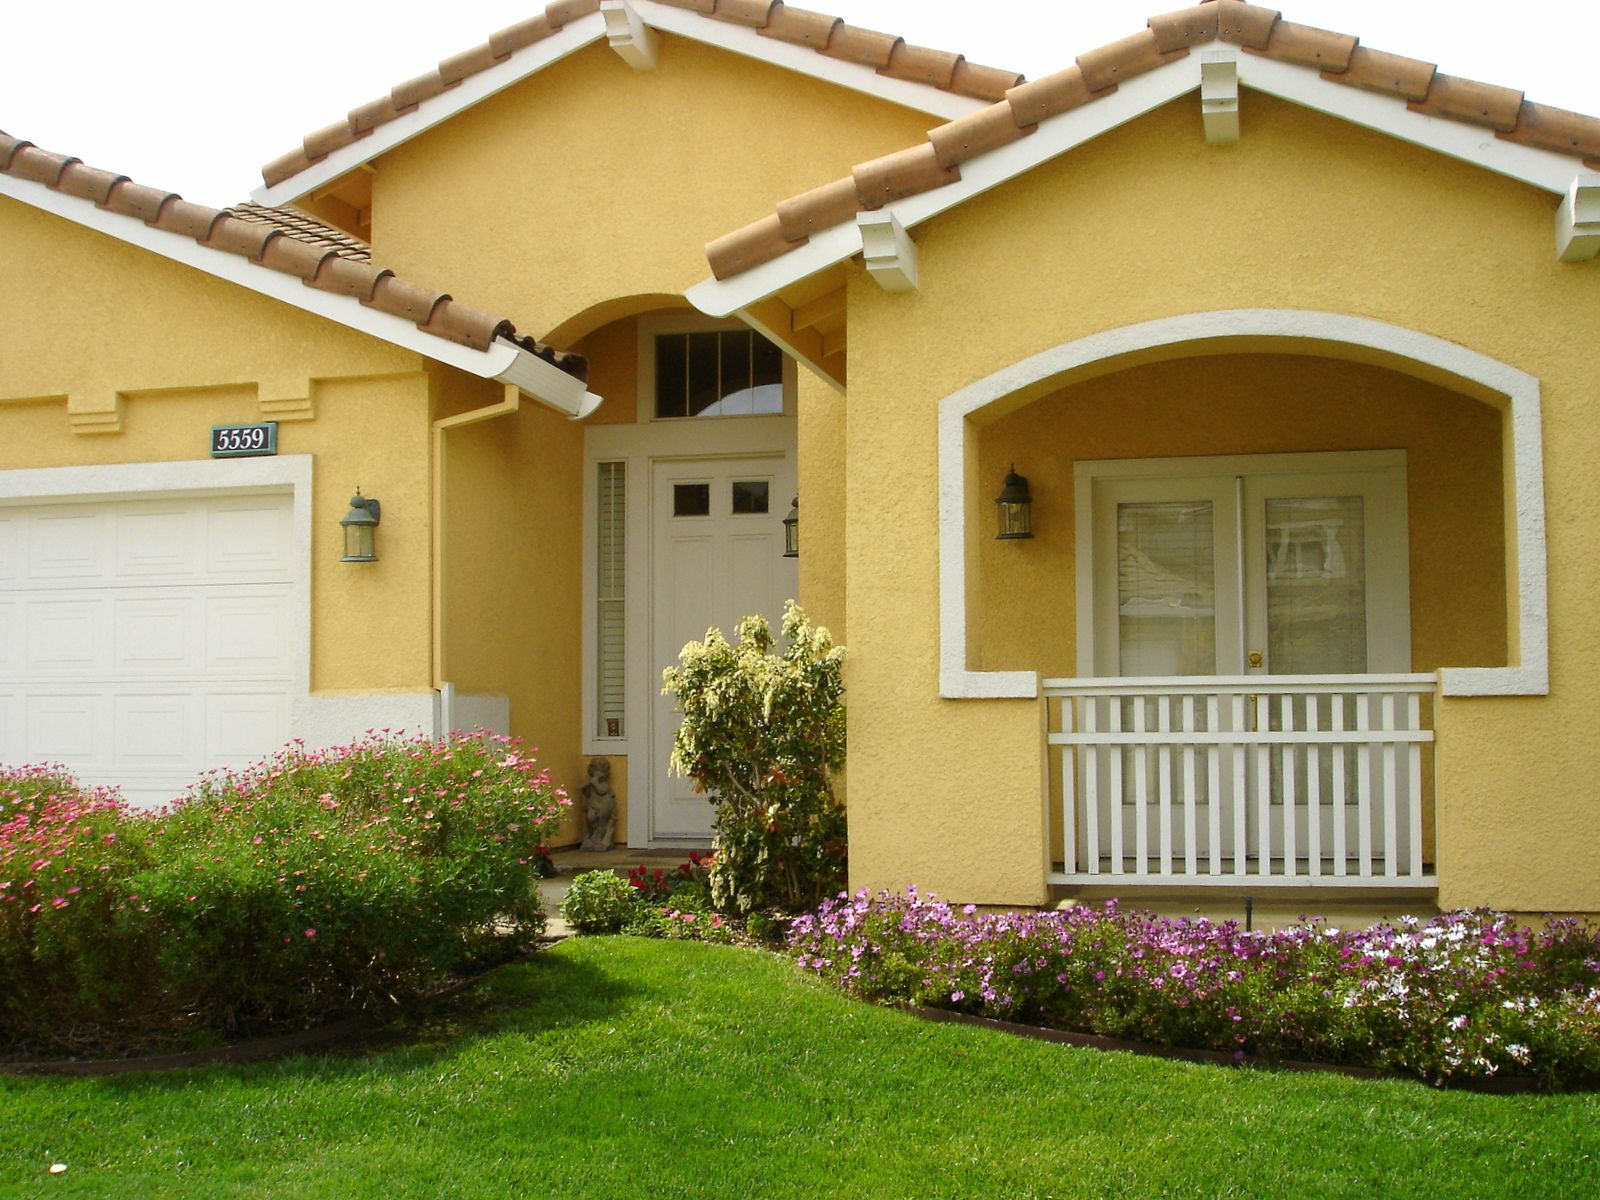 Exterior cool yellow exterior paint feats with nice white garage exterior paint colors - Exterior paint color combination minimalist ...